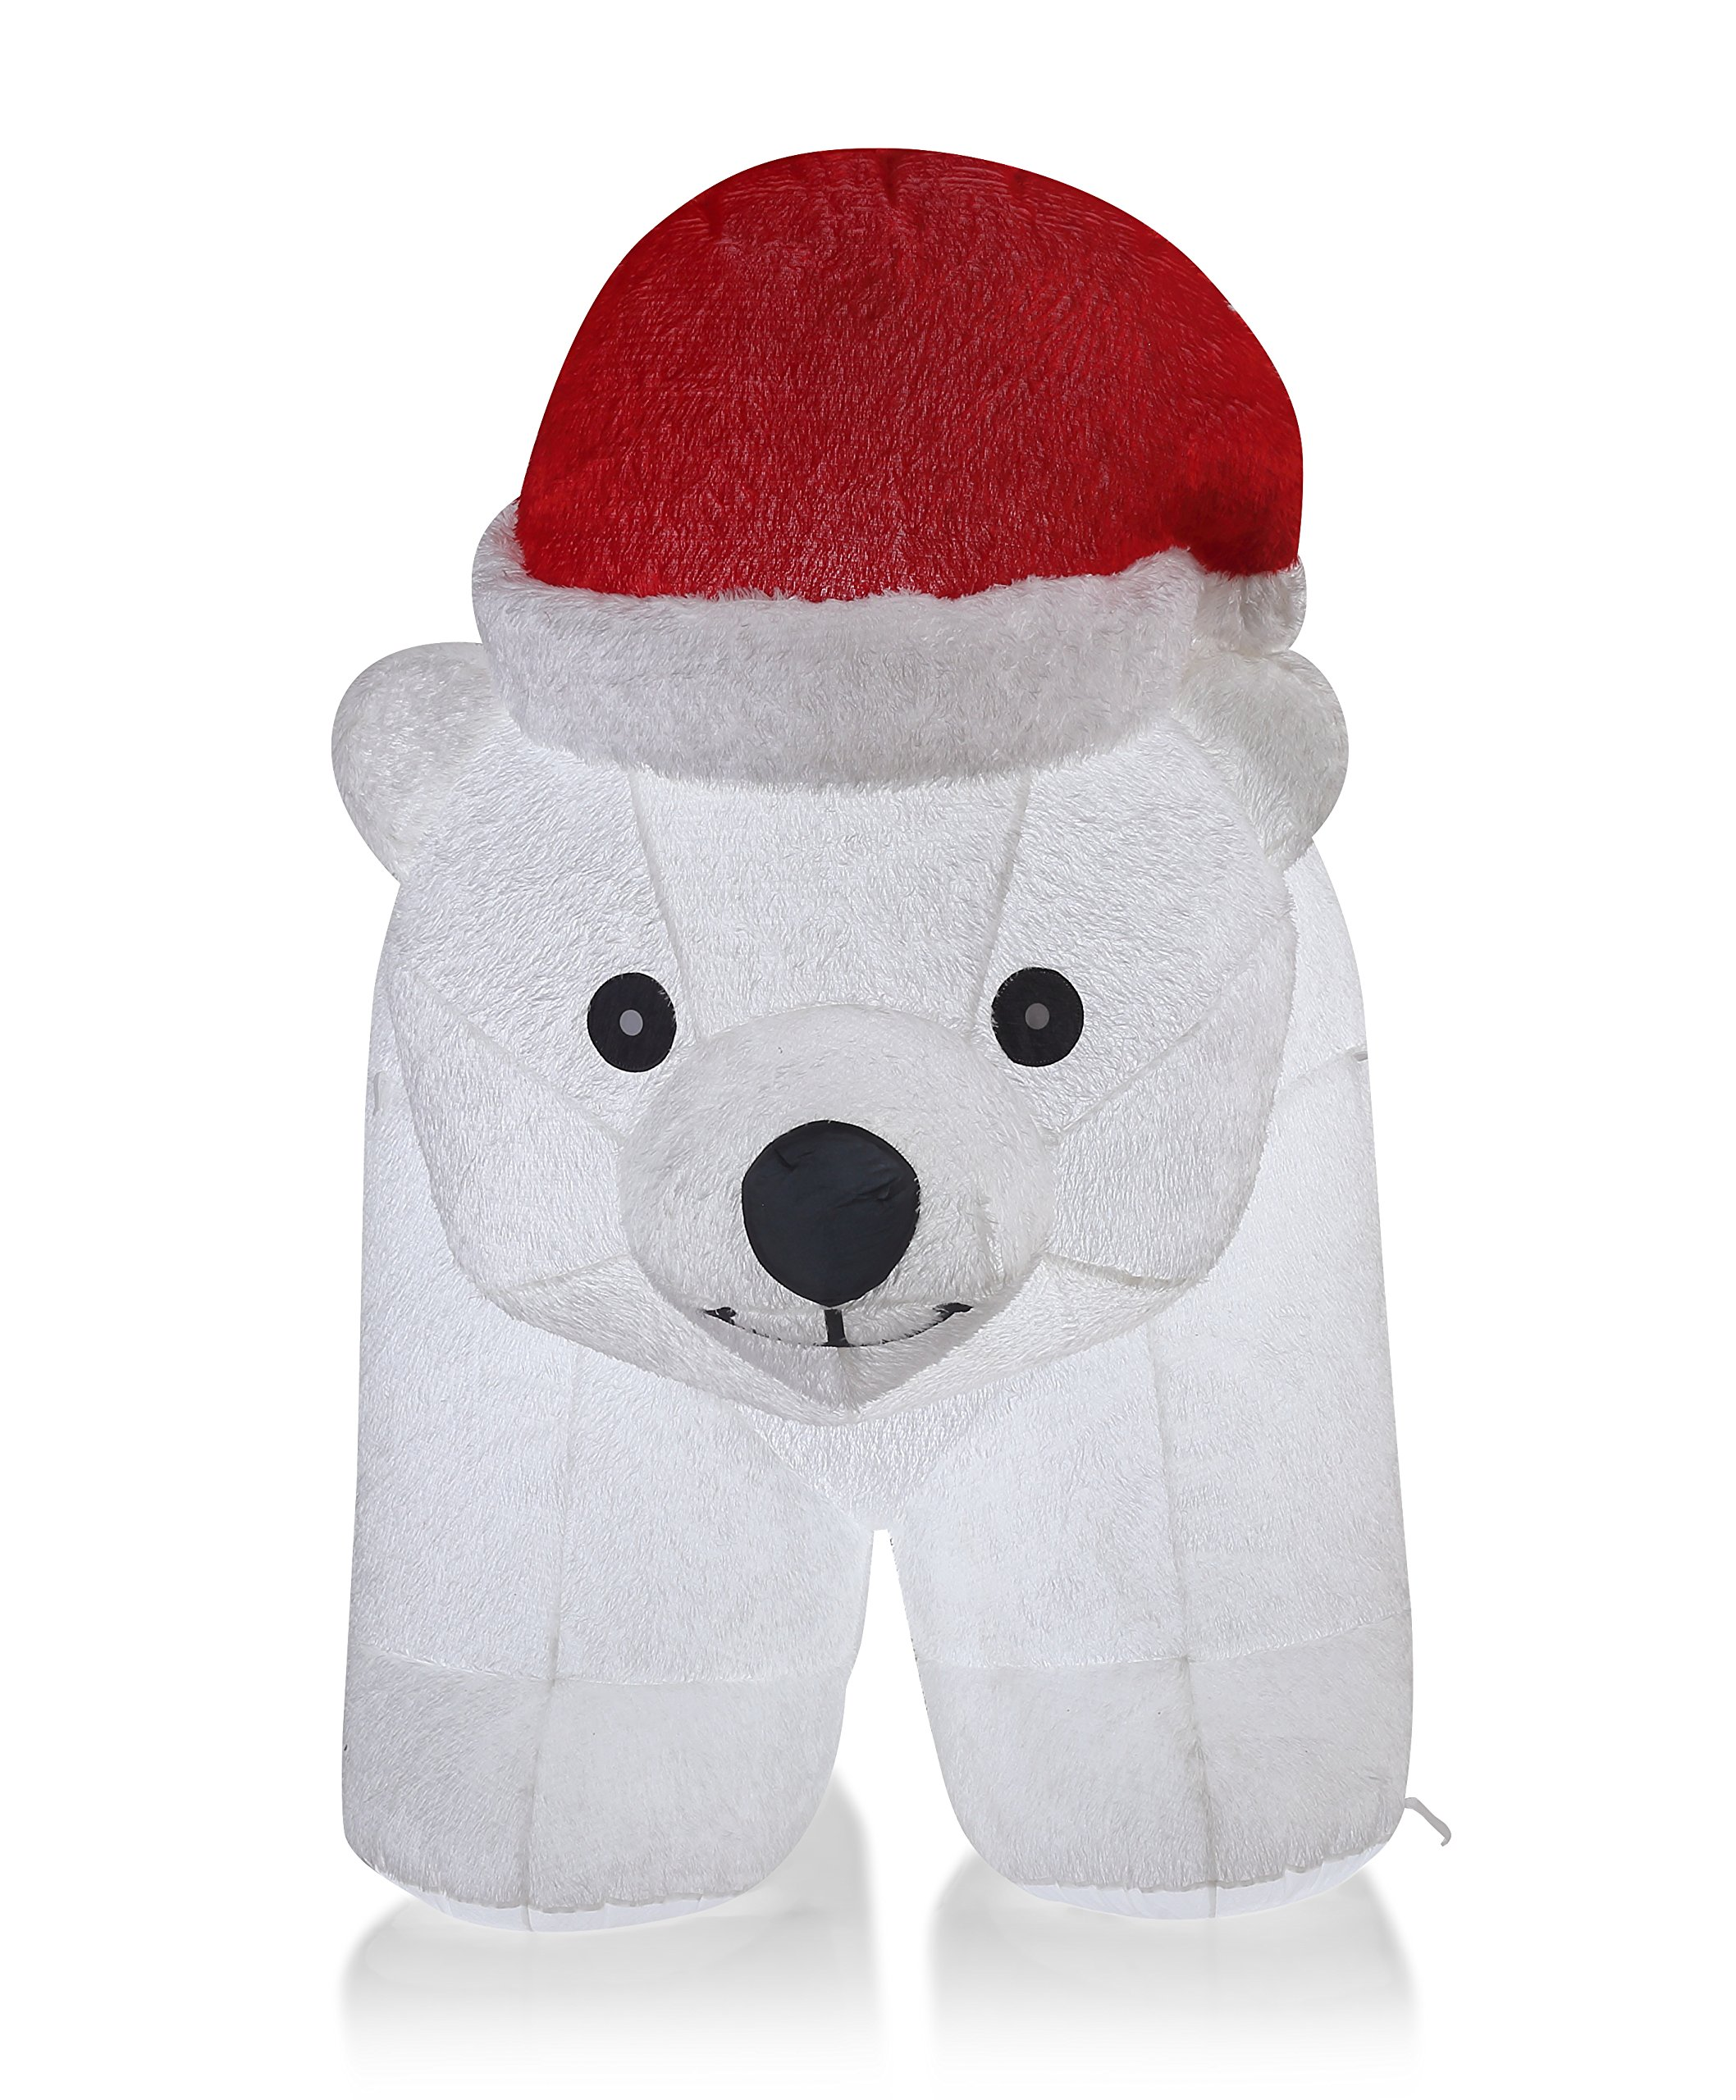 VIDAMORE 6.5 Foot Large Inflatable X-Mas Polar Bear LED Lighted Inflatables Outdoor Holiday Yard Lawn Decorations by Vidamore (Image #2)